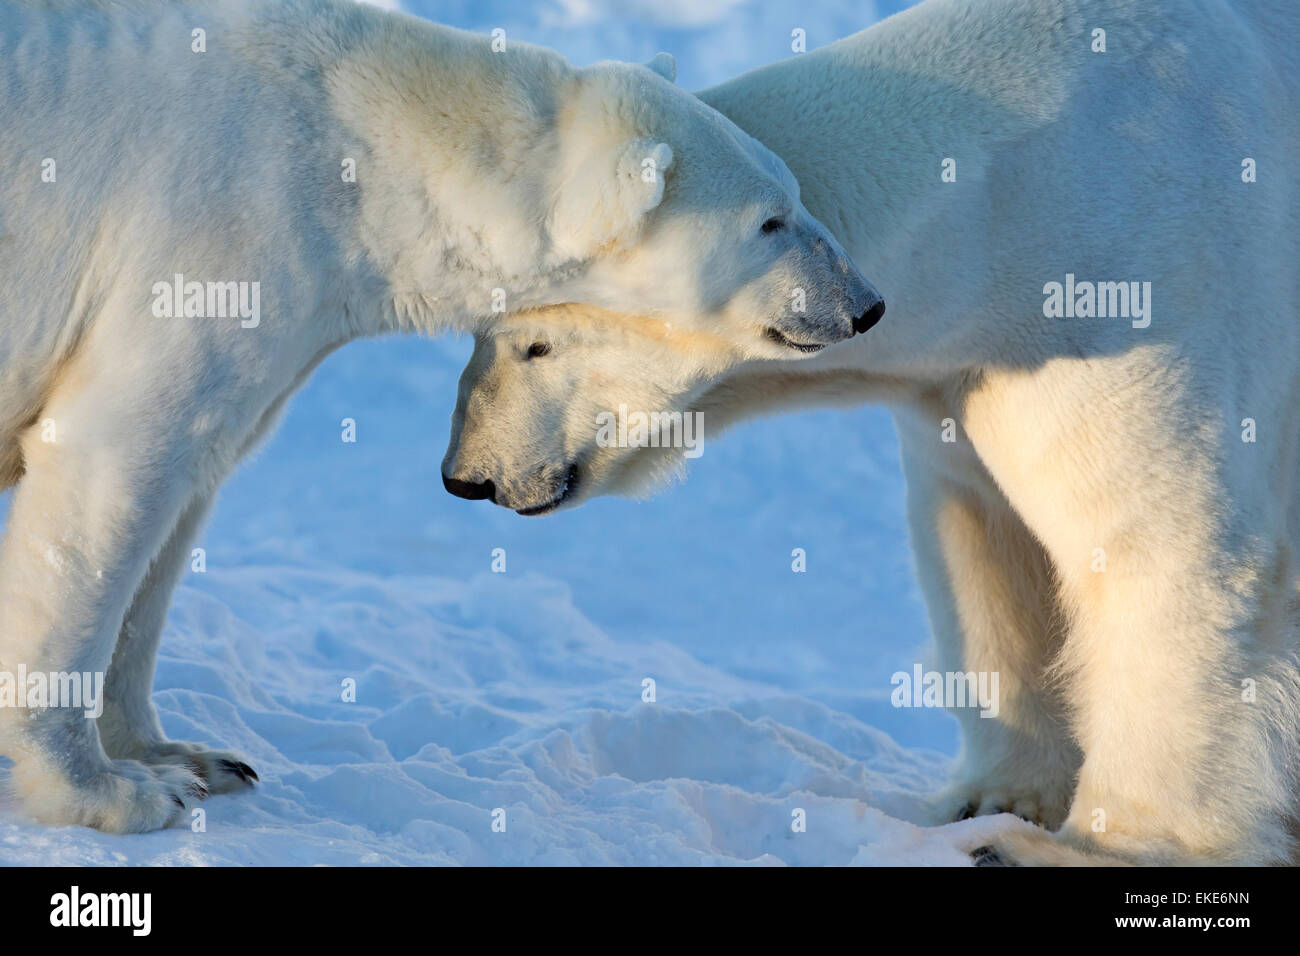 Polar bear (Ursus maritimus) male and female come together during mating season - Stock Image